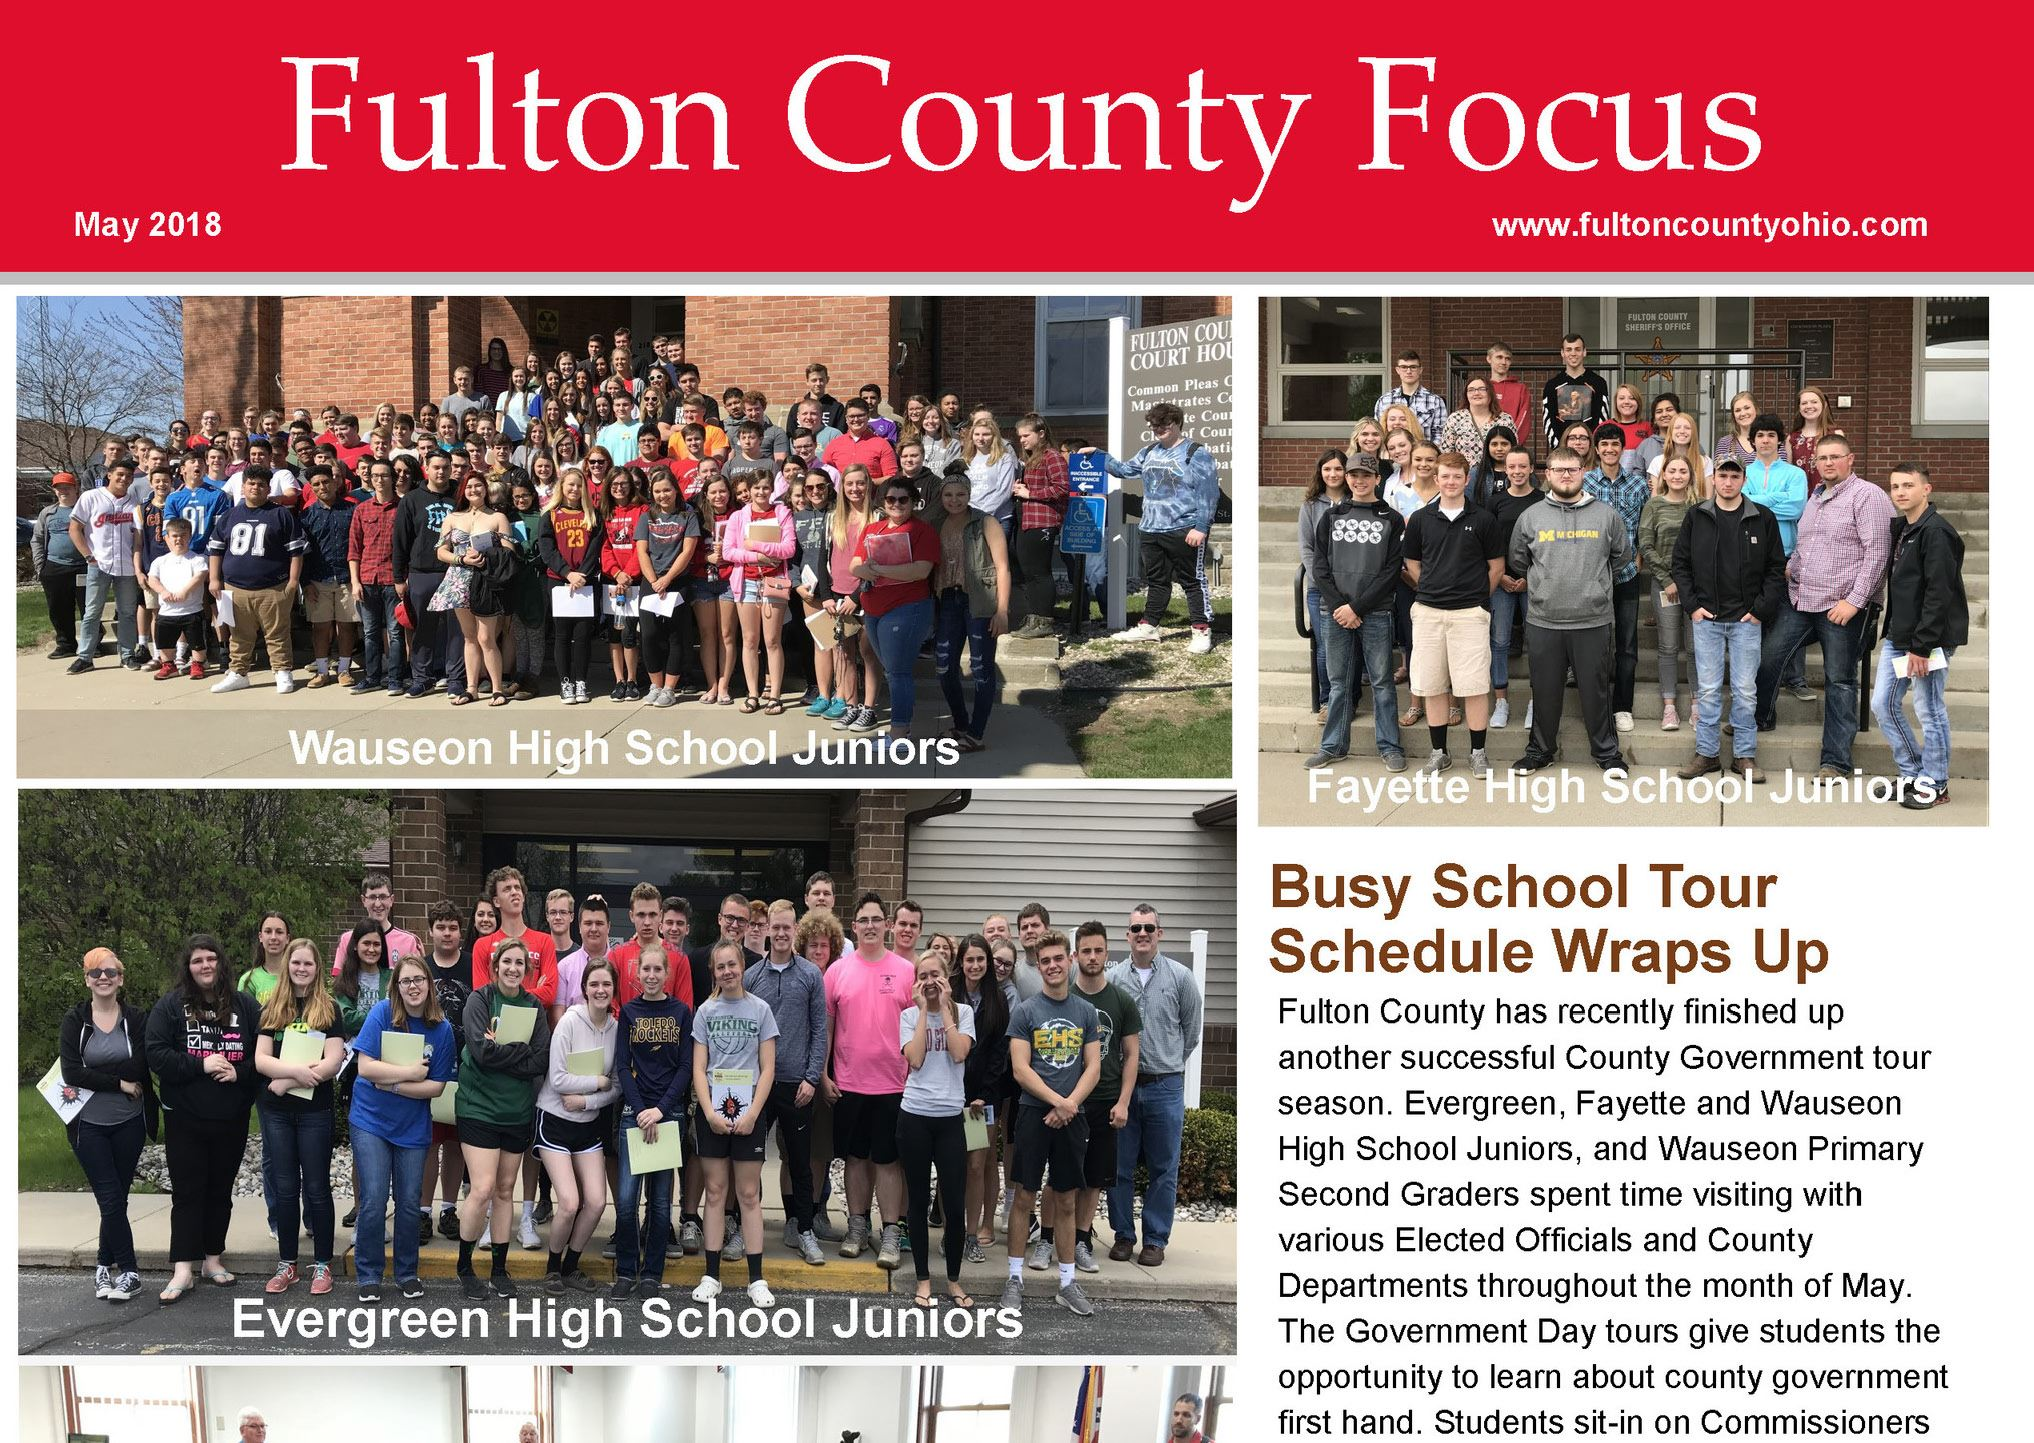 Fulton County Focus May 2018 Edition Promotional Flyer